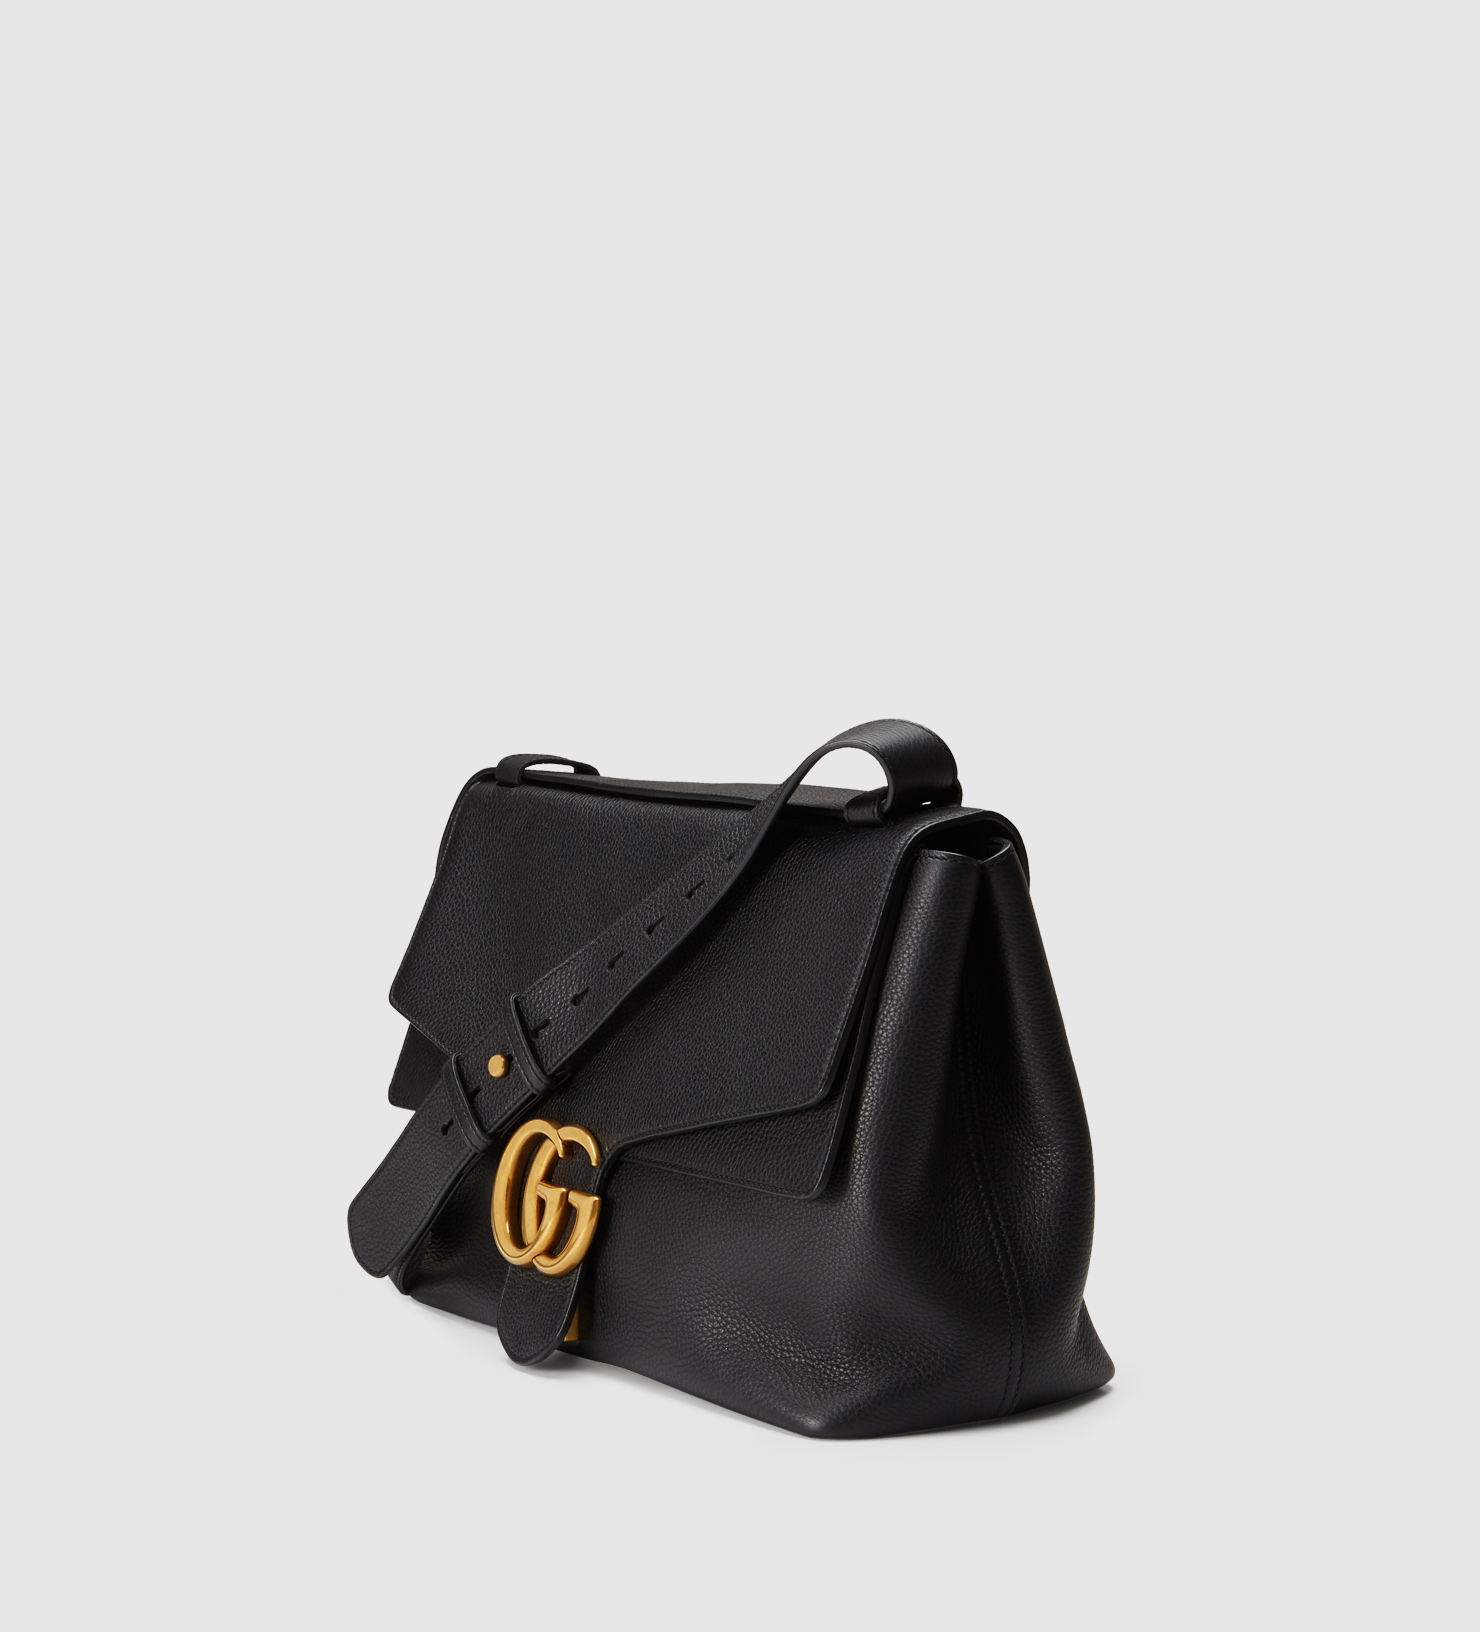 fc779beb6ab Lyst - Gucci Gg Marmont Leather Shoulder Bag in Black